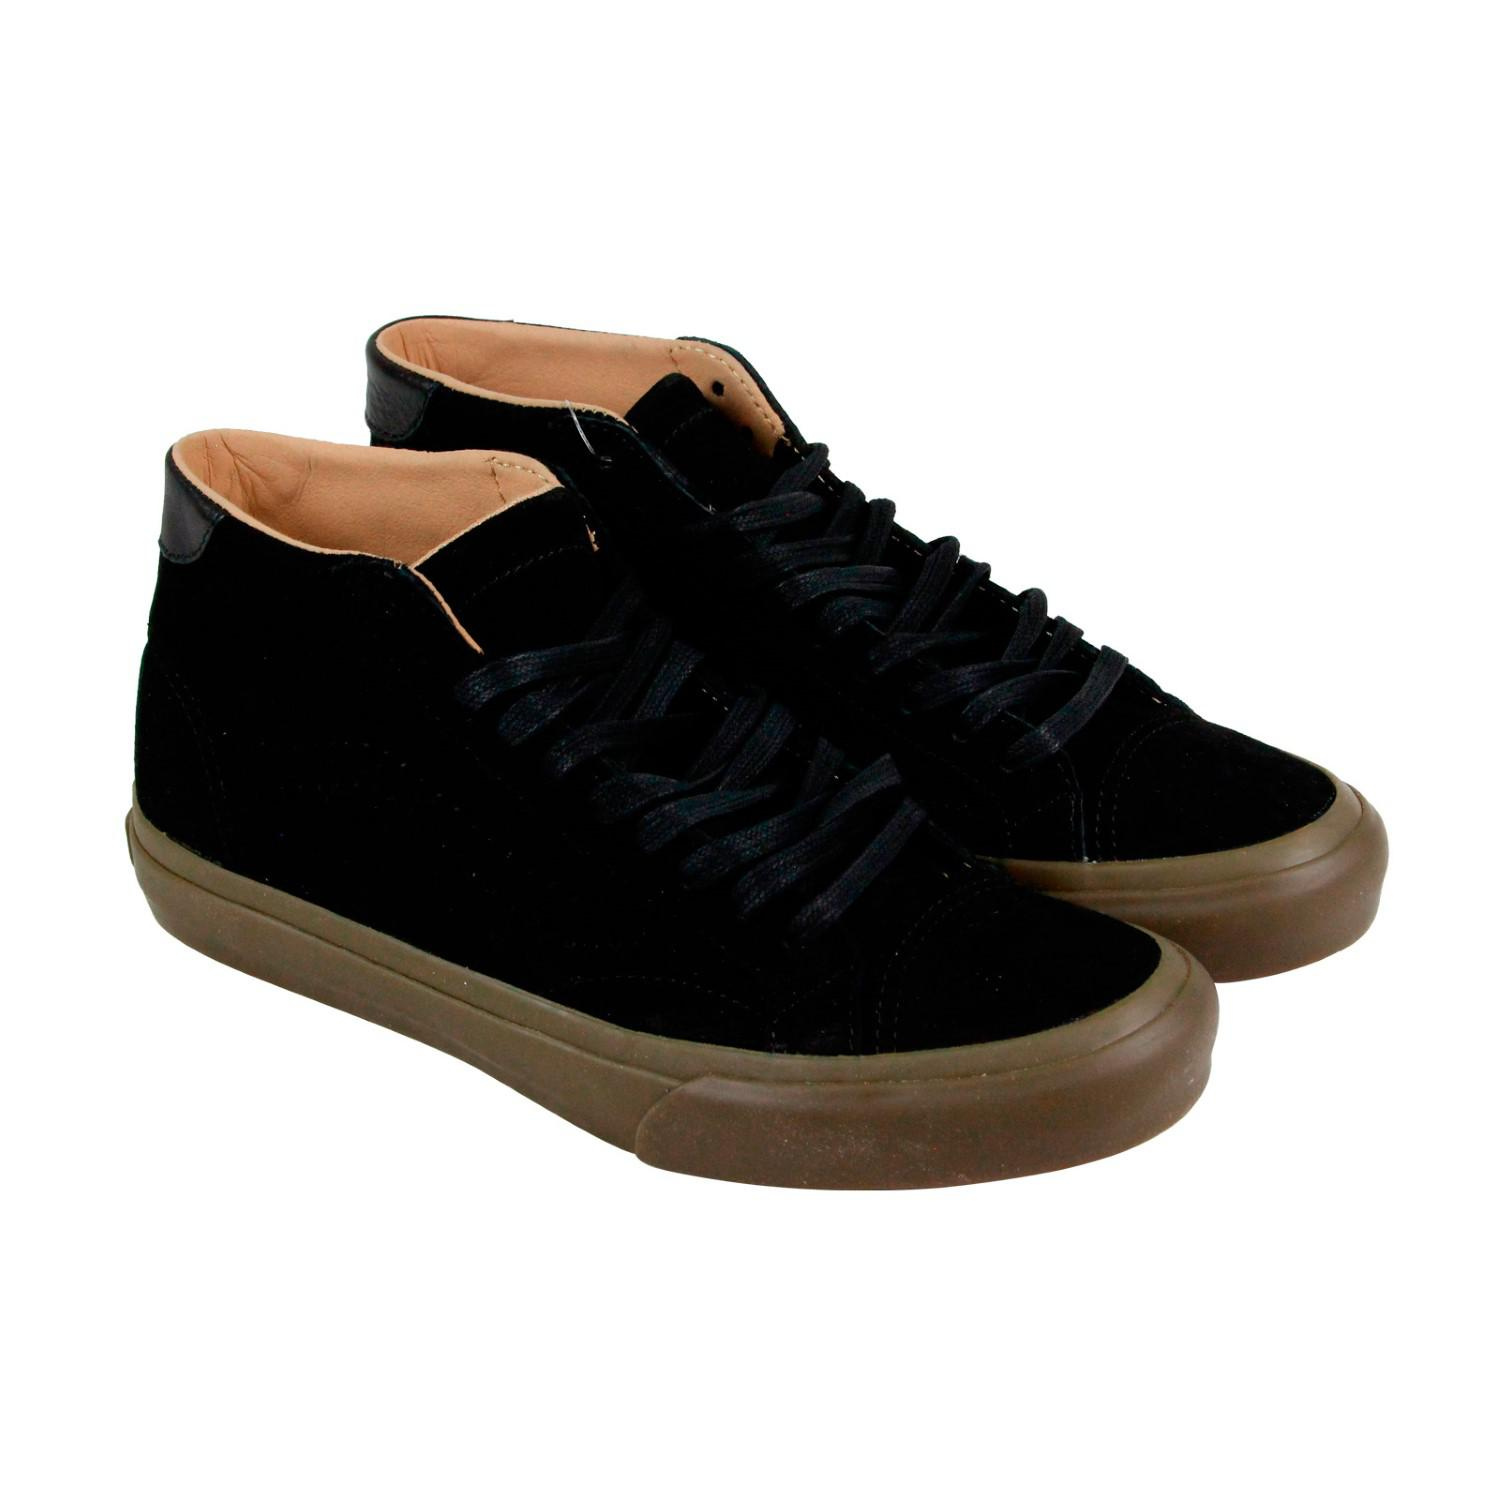 64ded7f2e3 Lyst - Vans Court Mid Dx Tanner Black Dark Gum Mens Lace Up Sneakers ...